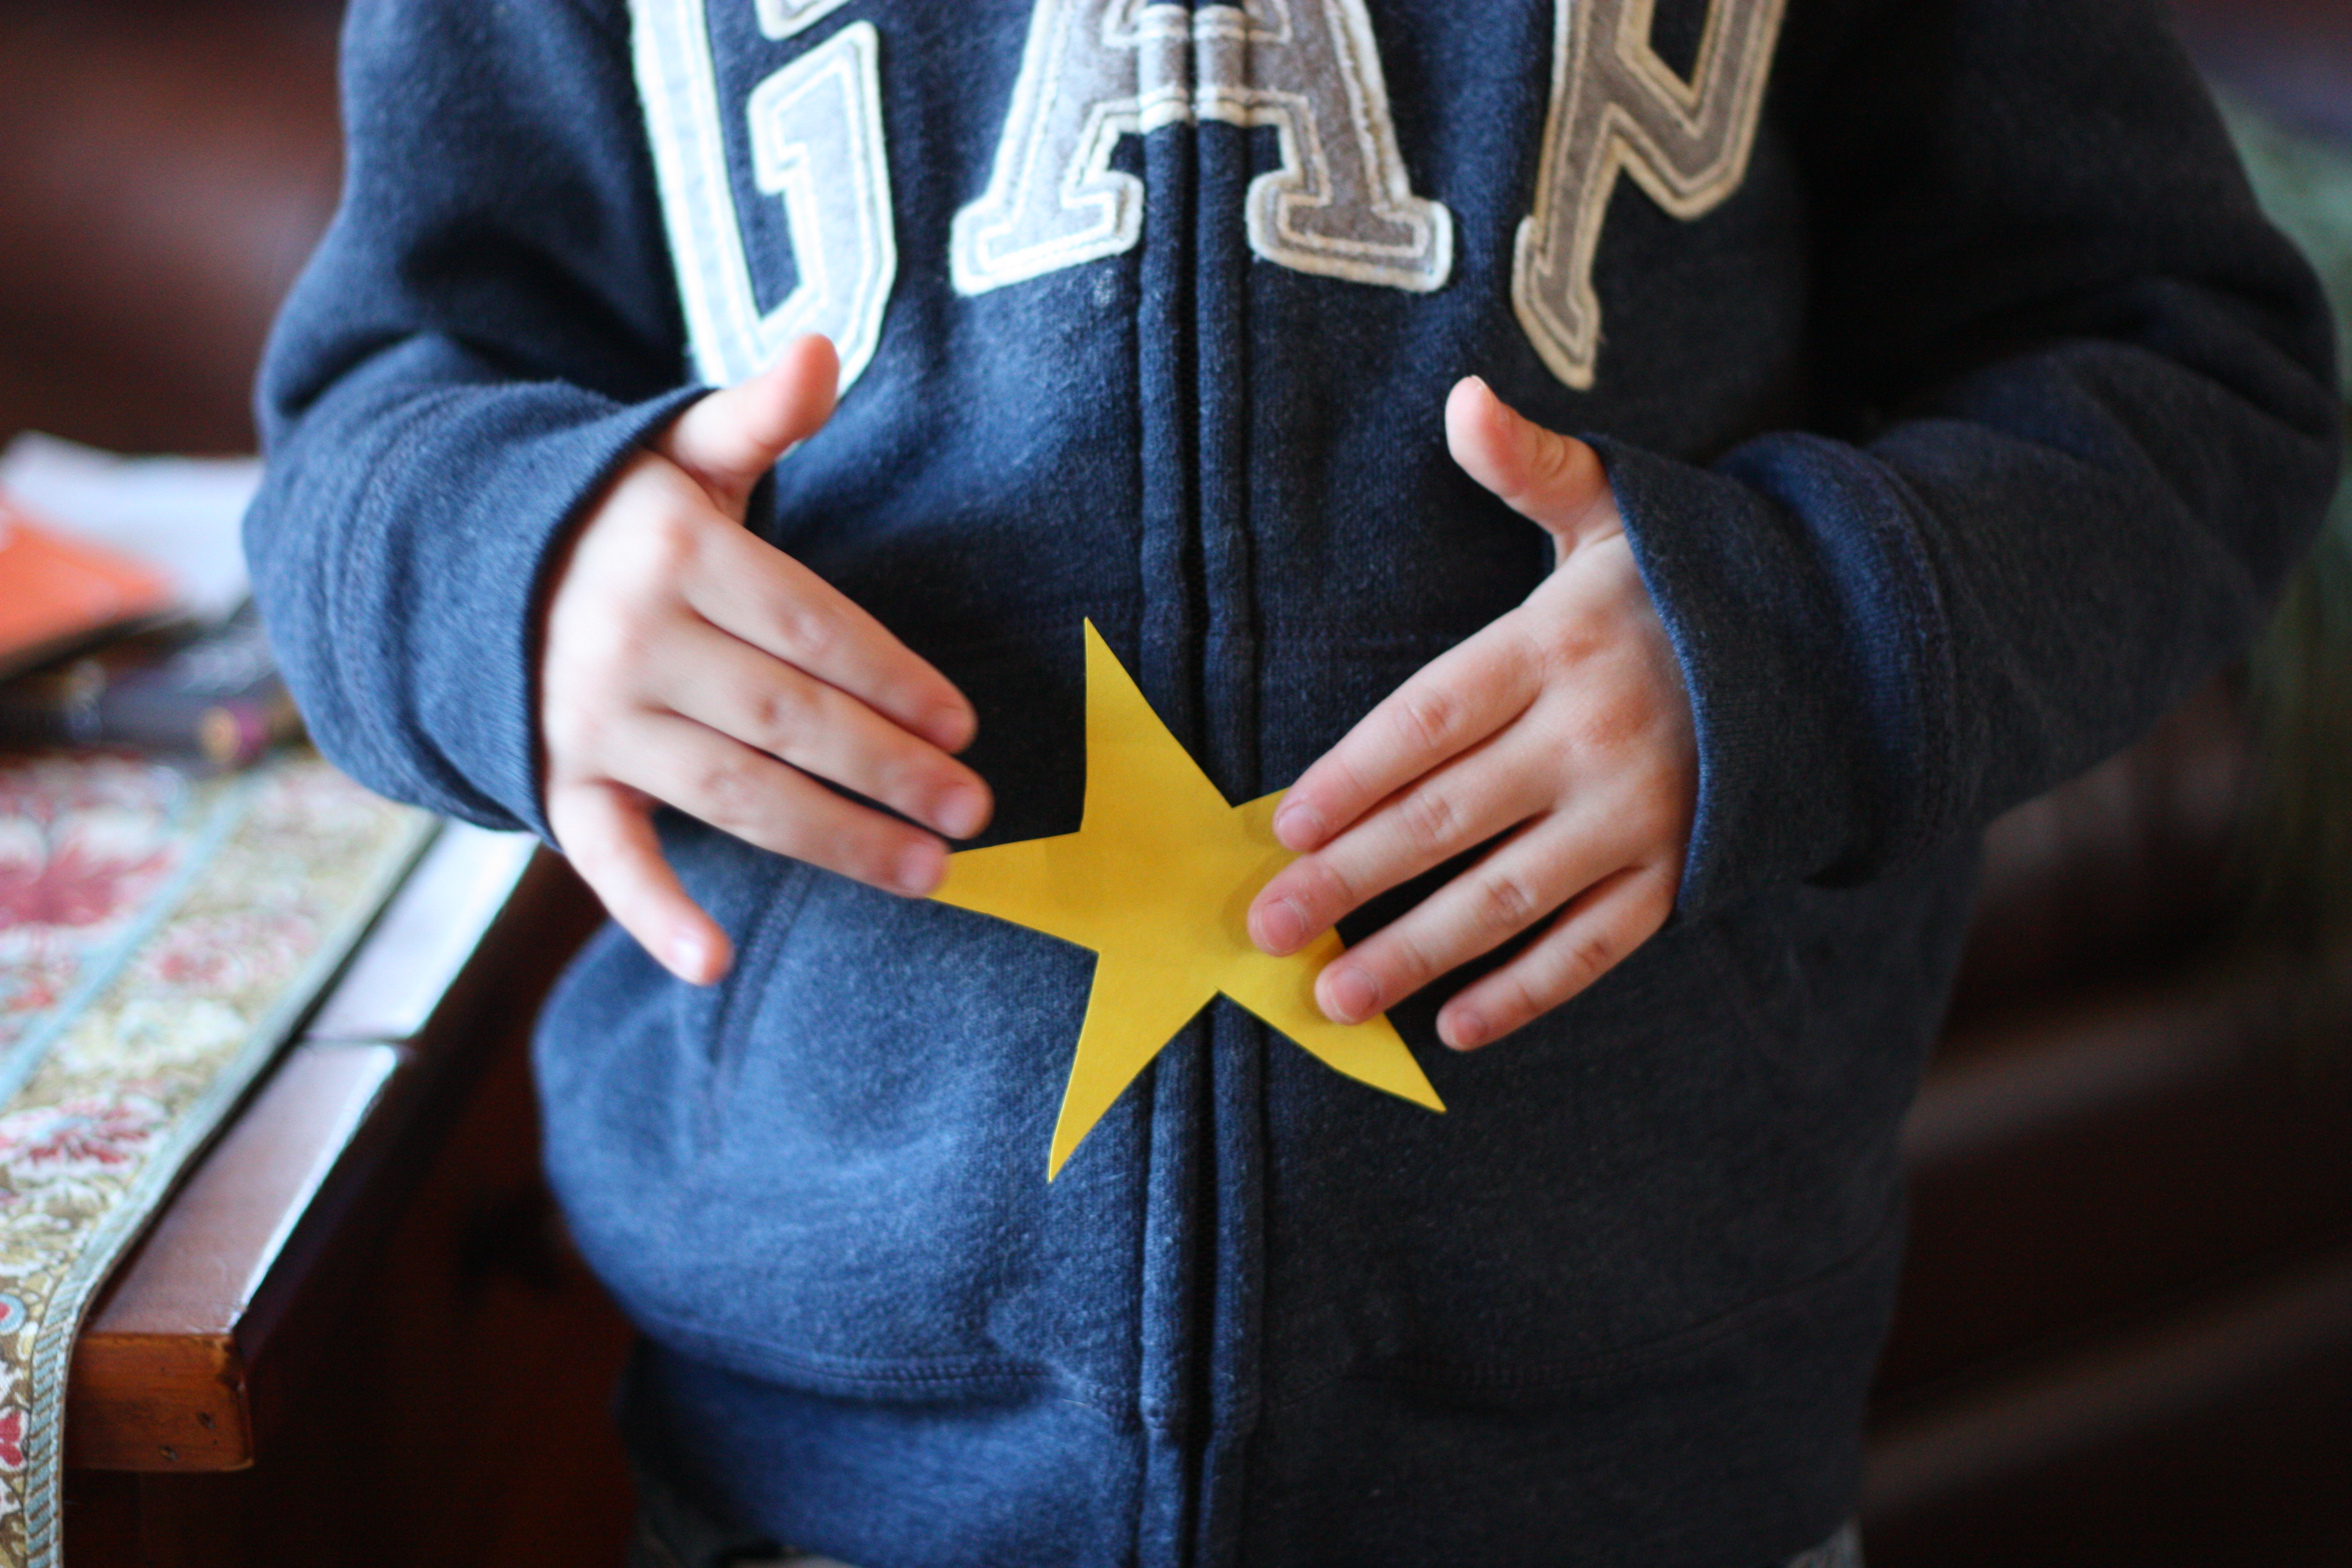 Dr seuss the sneetches activity i can teach my child put the star on your head uh oh i didnt say mcbean says sciox Choice Image